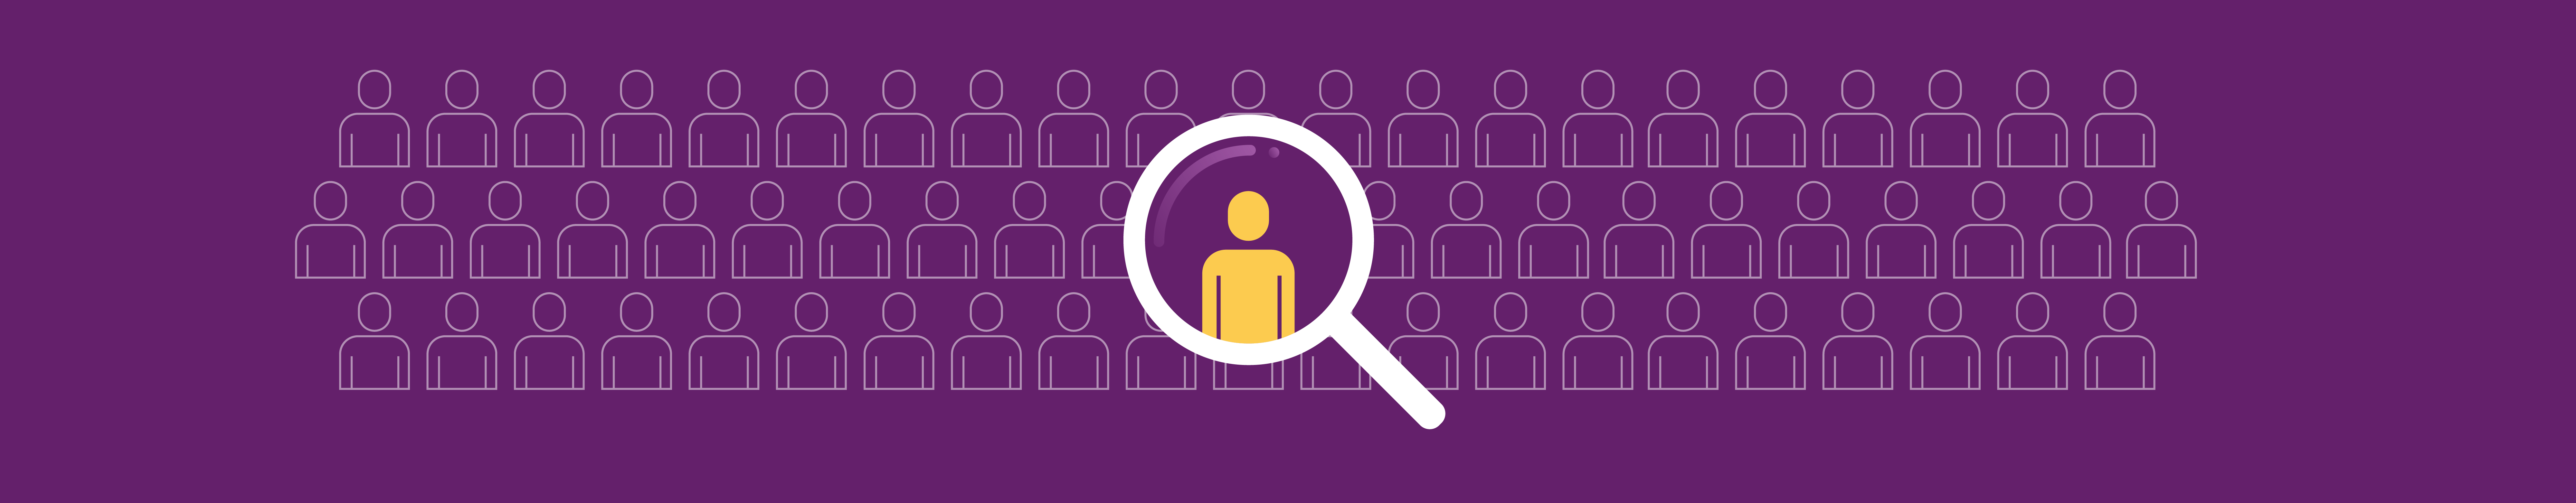 Image of yellow figure in the middle of magnifying glass surrounded by other people on a purple background